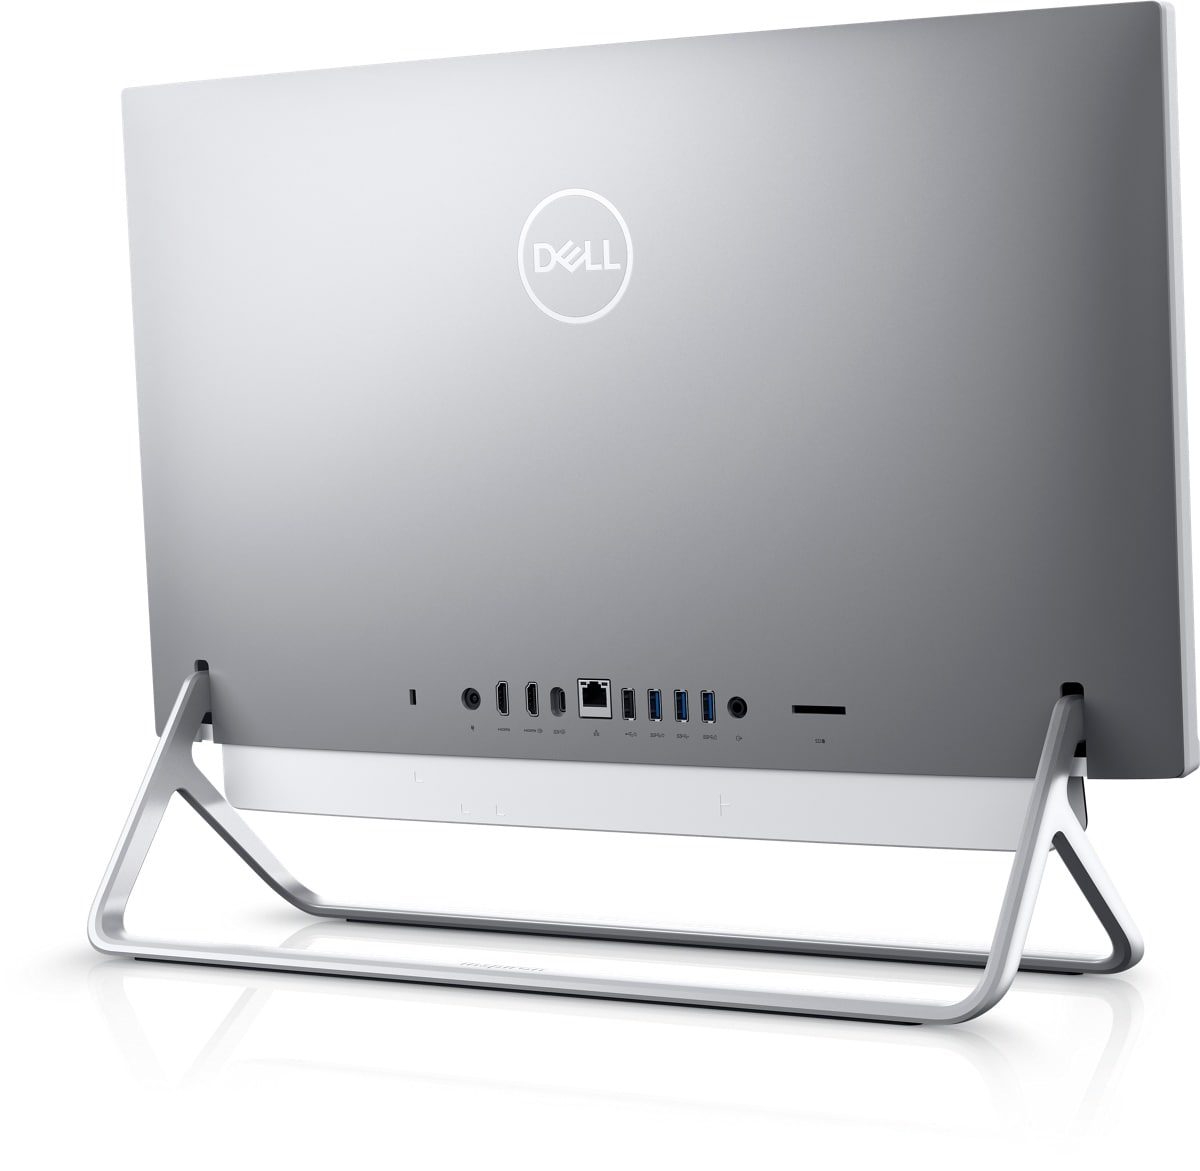 New Inspiron 24 5000 Silver Touch All-In-One with Arch Stand   Dell